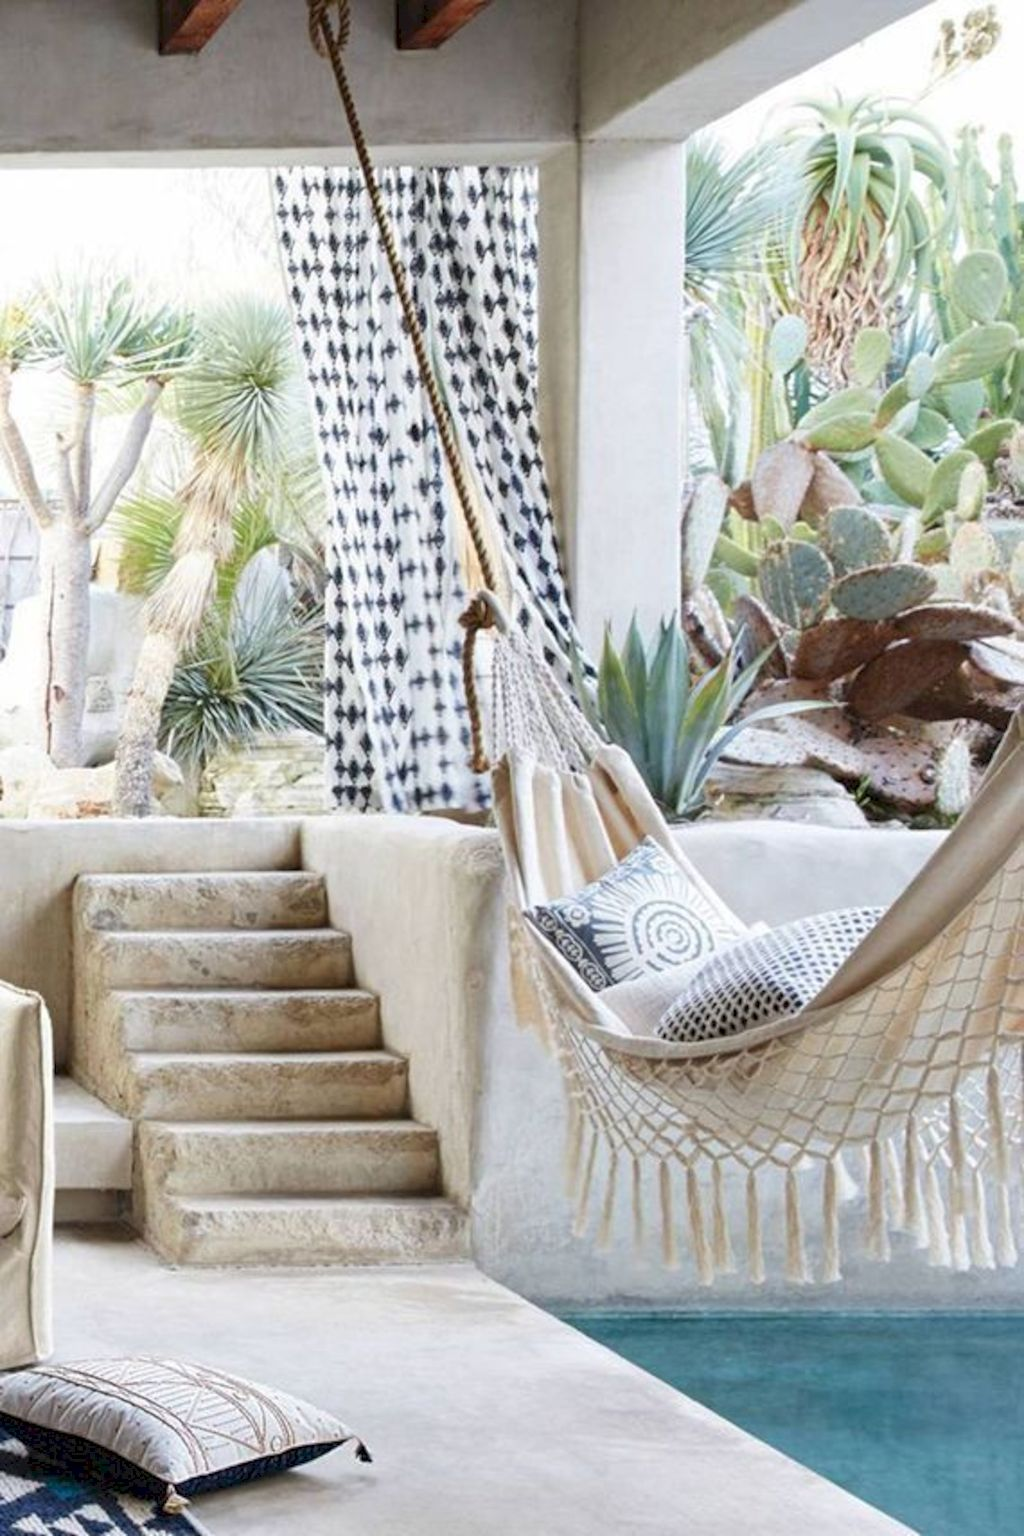 Coastal chic decoration with nautical accessories showing a fresh look in cool beach house styles Image 21